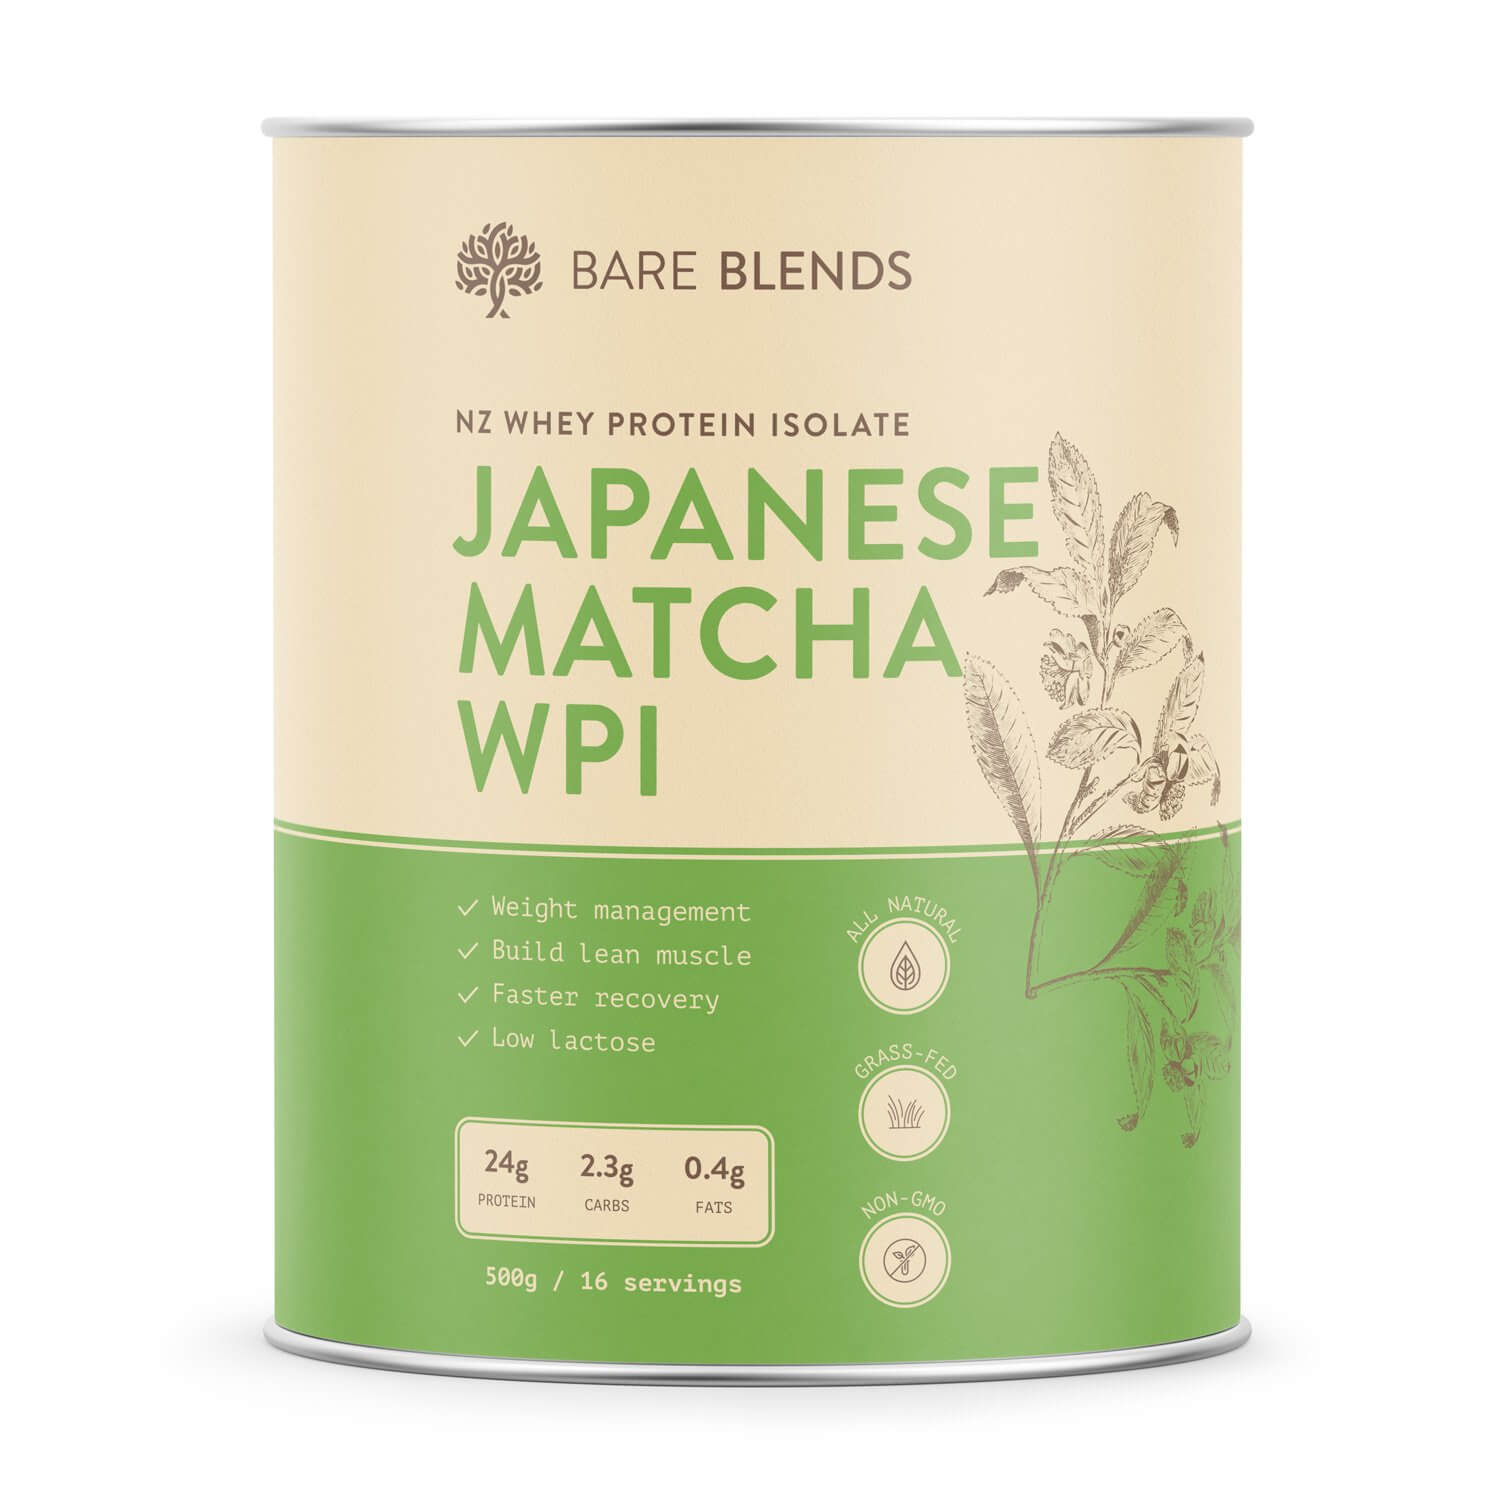 japanese-matcha-whey-protein-isolate